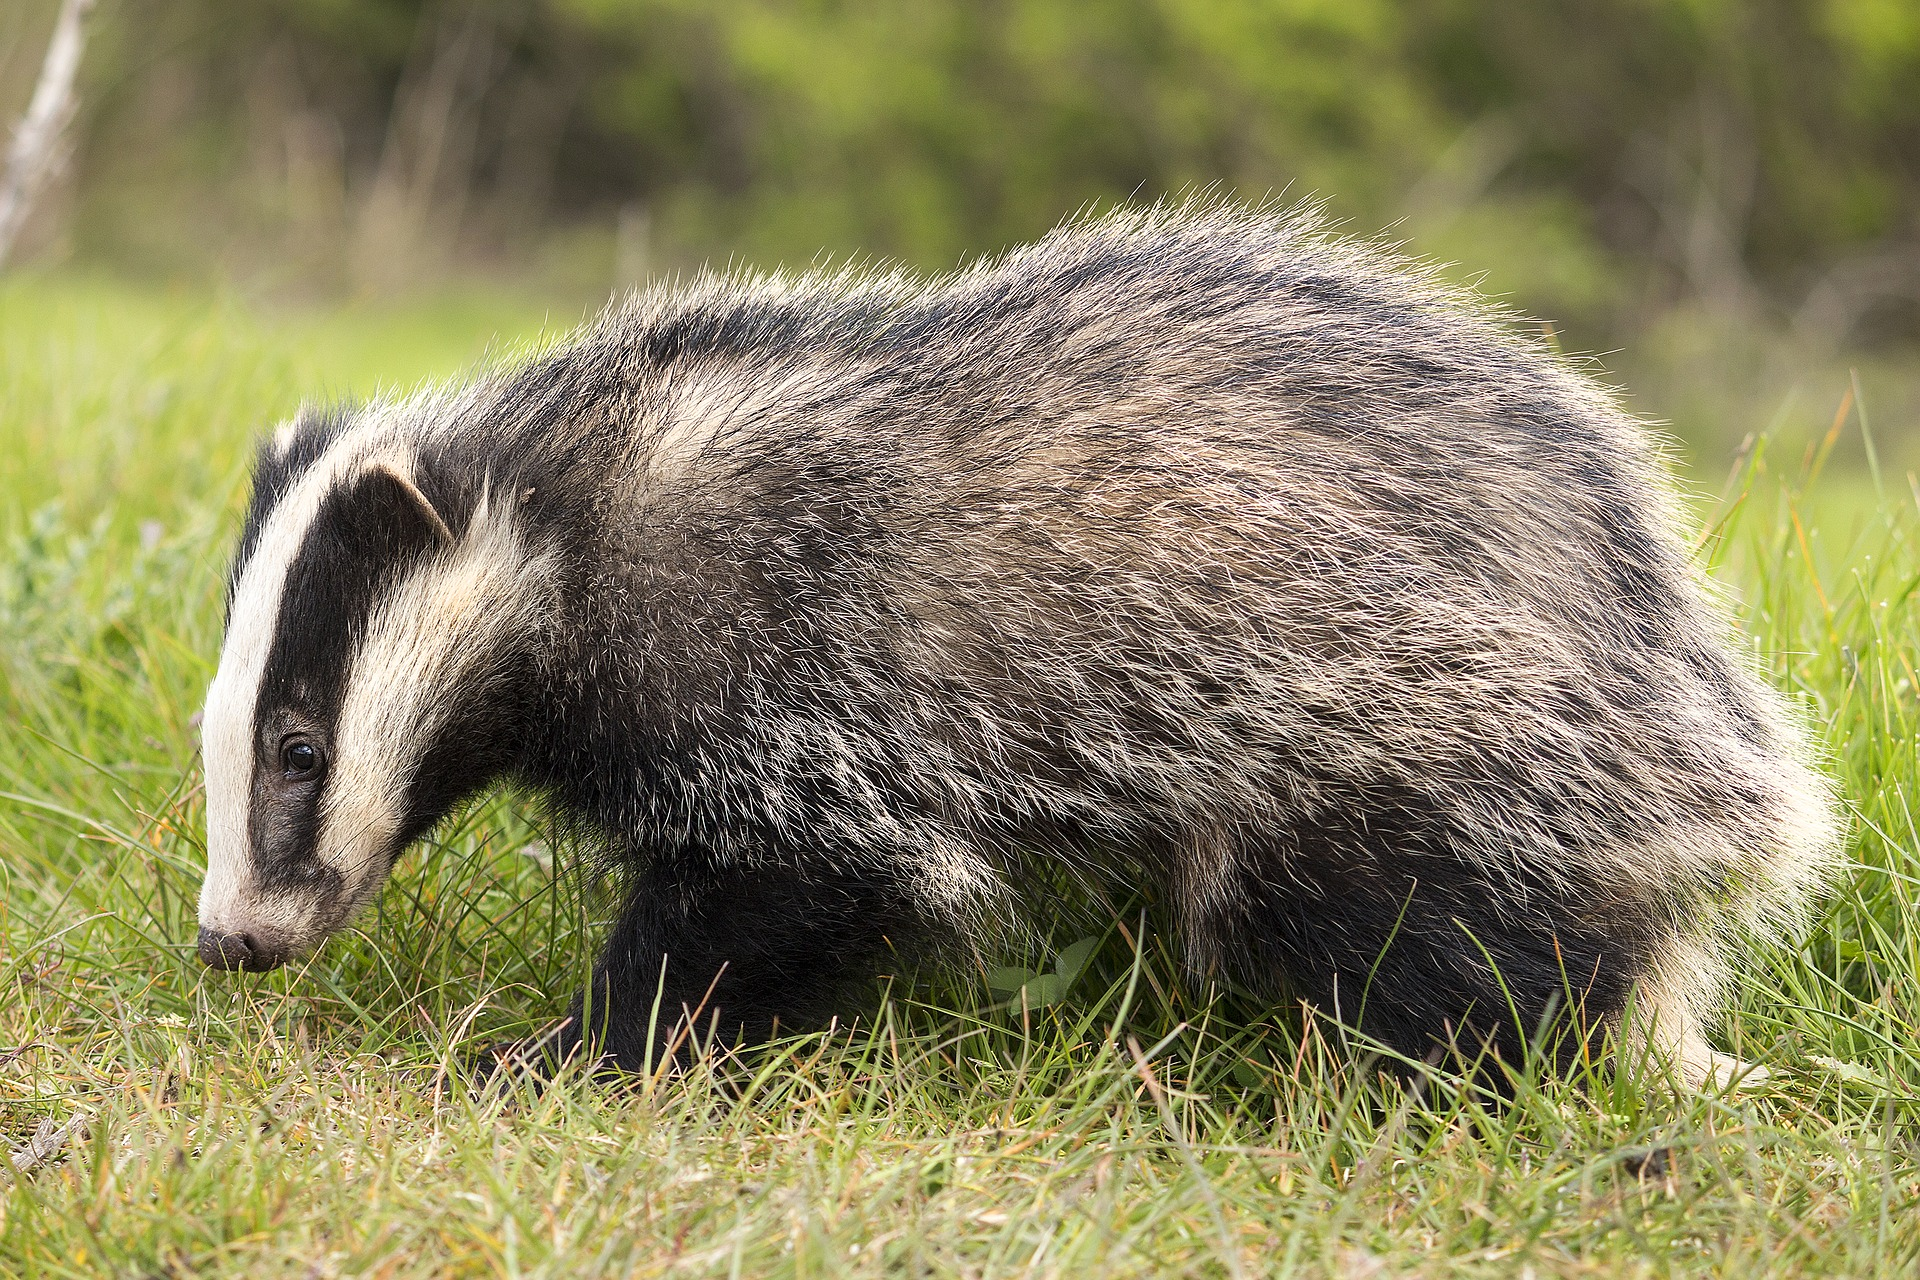 badgers are farmed to make shaving briushes, but the best shaving brush is made from synthetic bristles